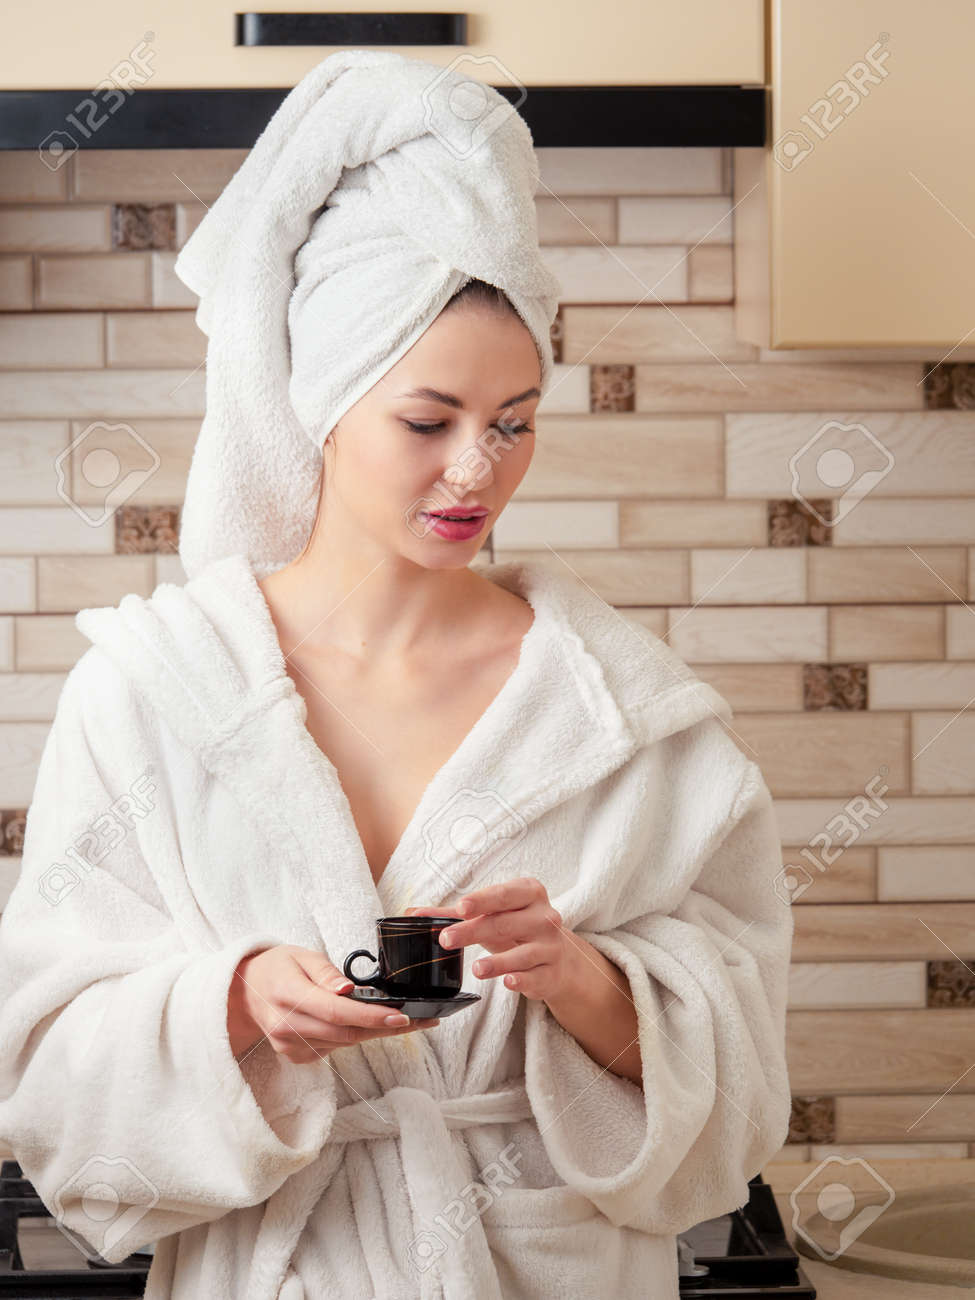 After a shower, a young, beautiful woman housewife in a white robe and a towel on her head is thinking with a cup of coffee in the kitchen. - 167782726